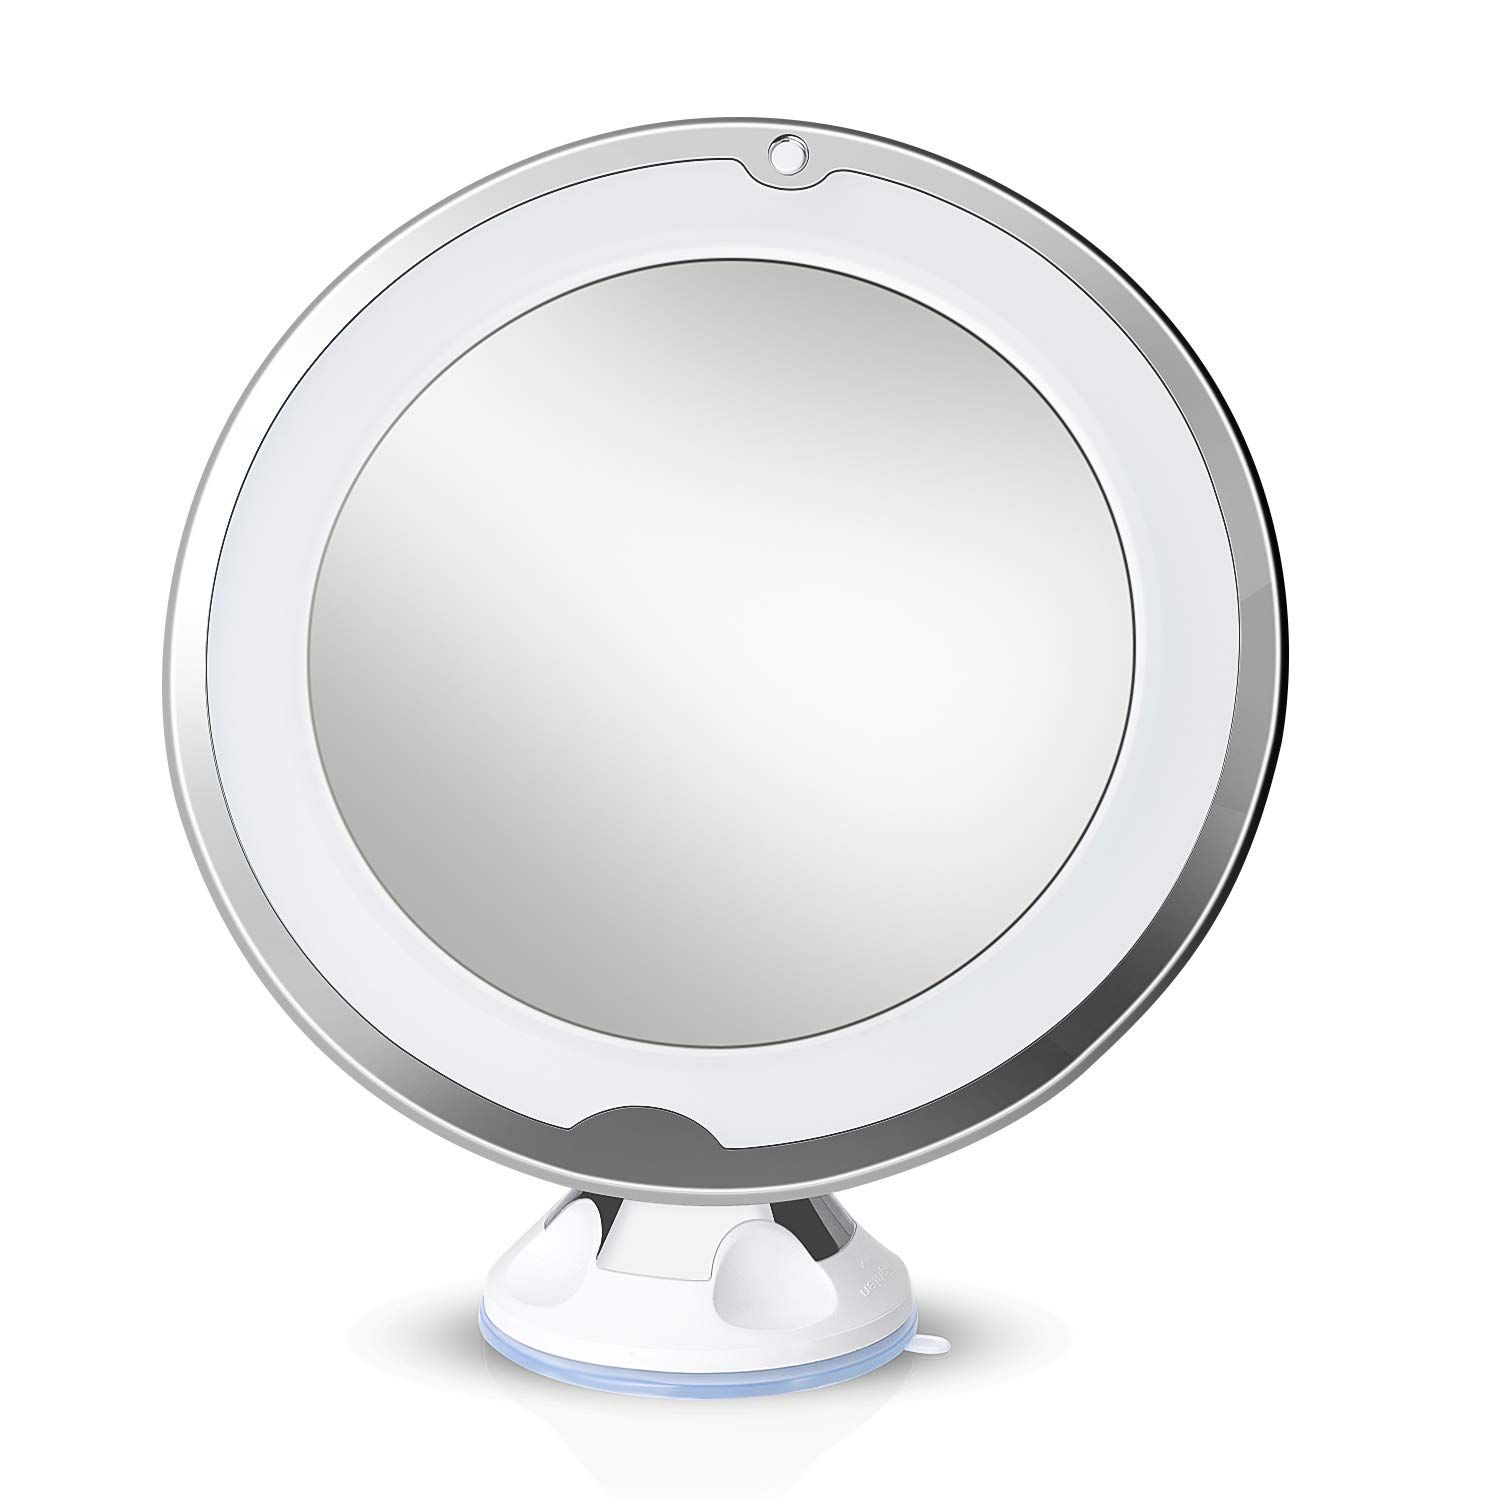 Lirex Lighted Magnifying Mirror 10x Led Makeup Mirror Shaving Mirror With Light Flexible Su Led Makeup Mirror Mirrored Bathroom Accessories Mirror With Lights